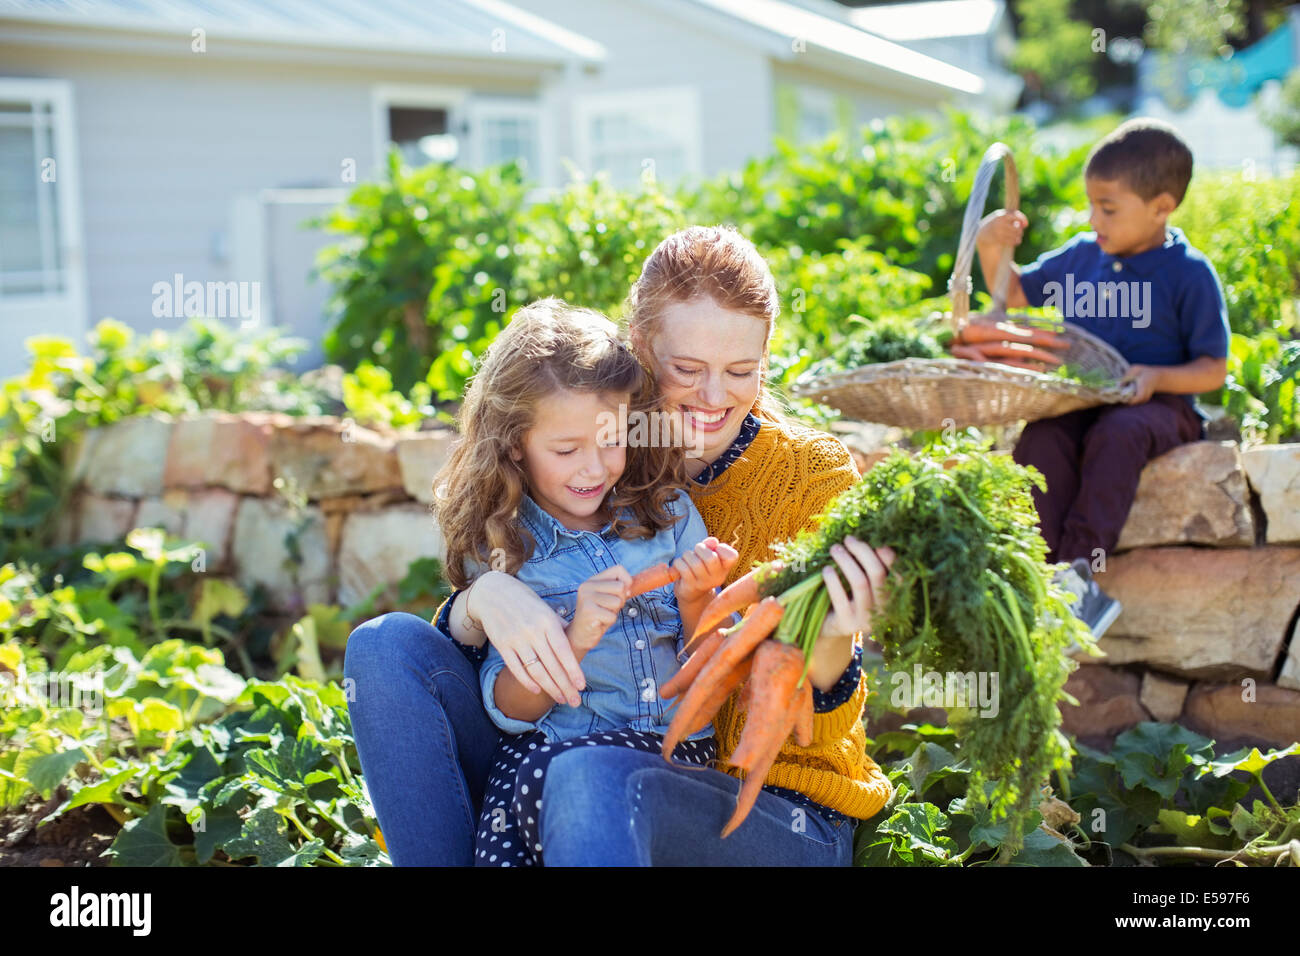 Student and teacher picking carrots in field - Stock Image